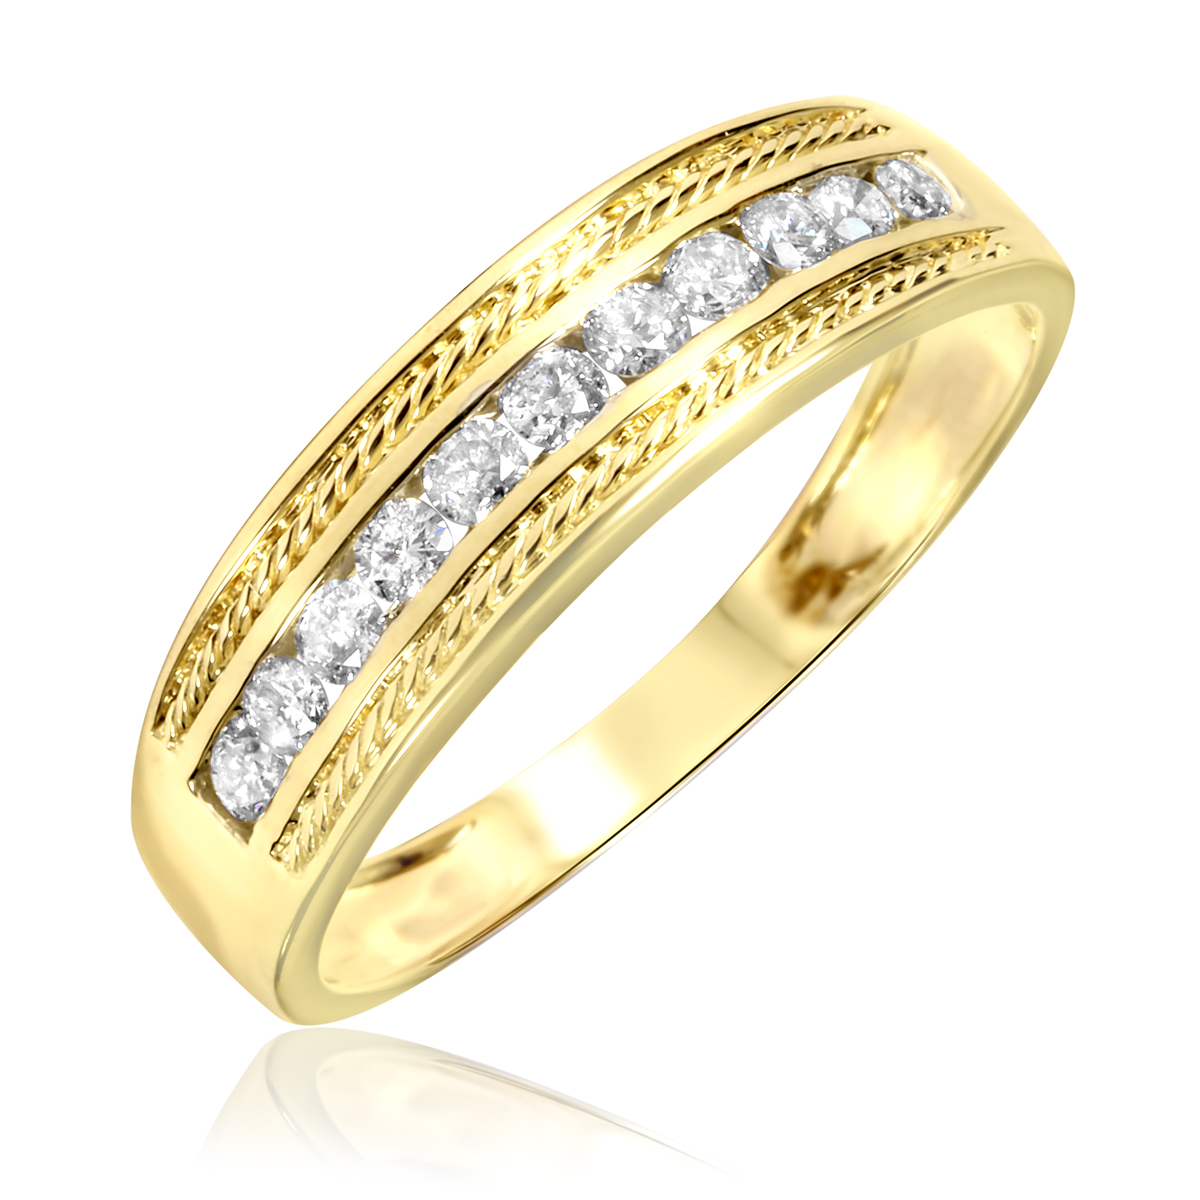 New 650 mens wedding rings gold with diamonds wedding for Mens wedding rings with diamonds white gold